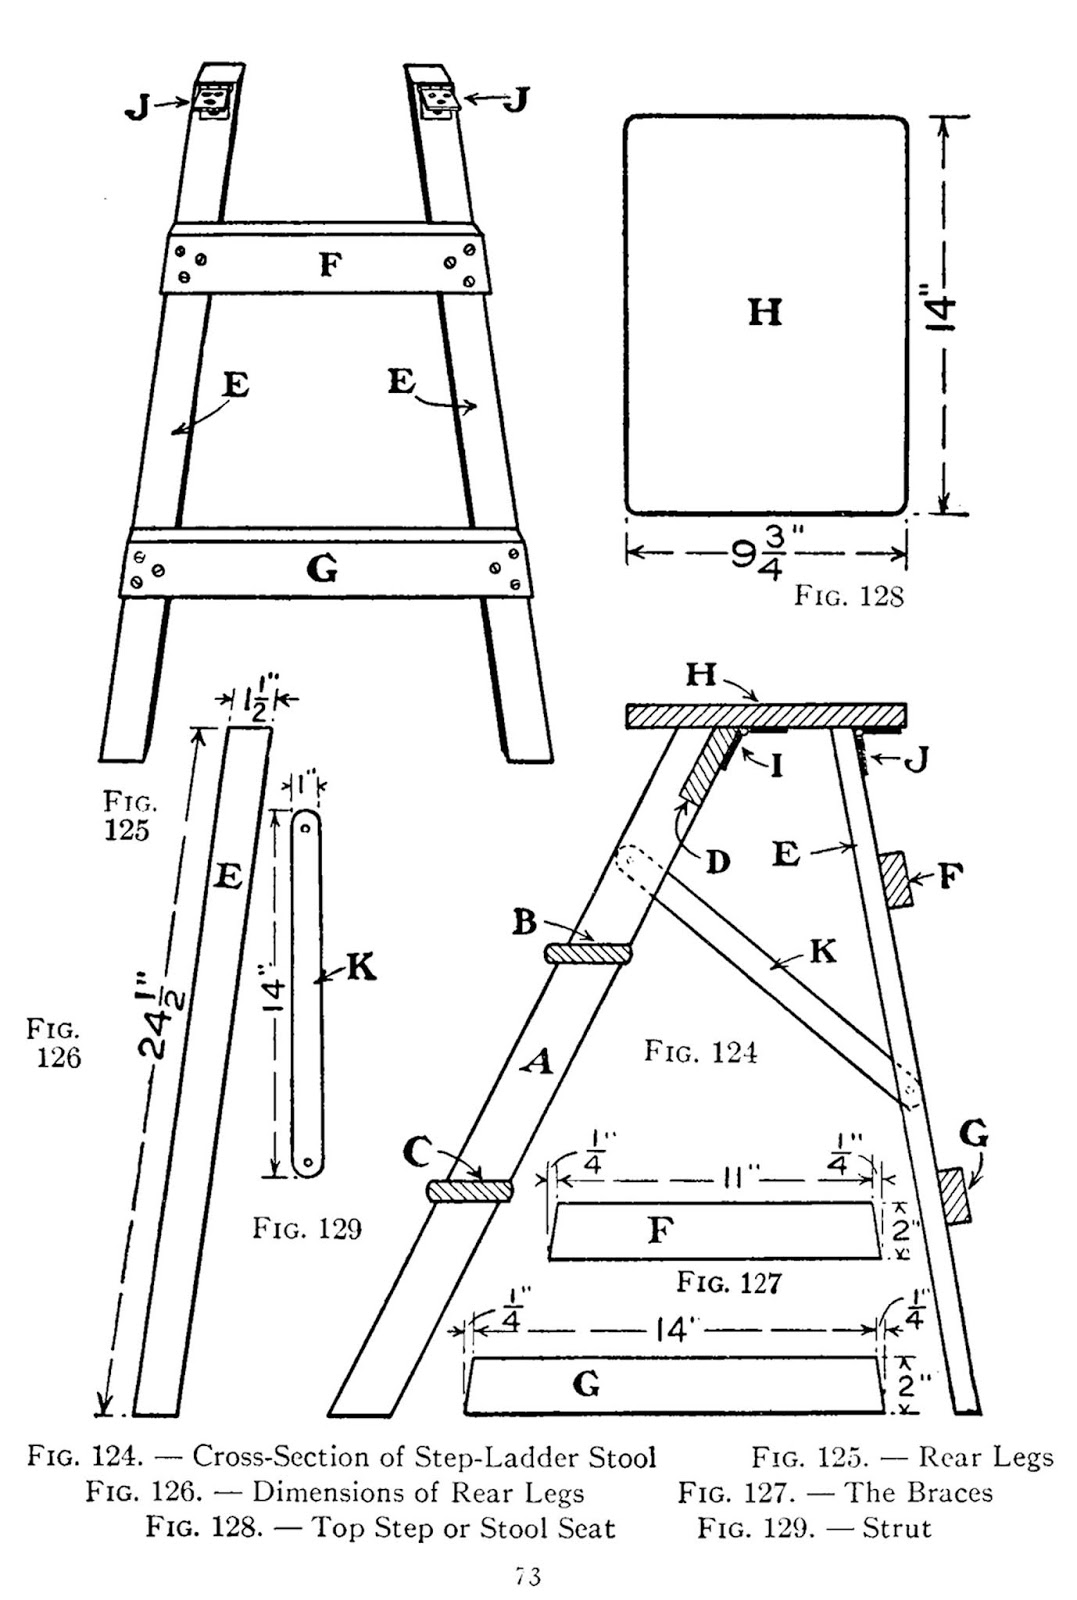 Sensational Folding Step Stool Woodworking Plan How To Make A Step Andrewgaddart Wooden Chair Designs For Living Room Andrewgaddartcom